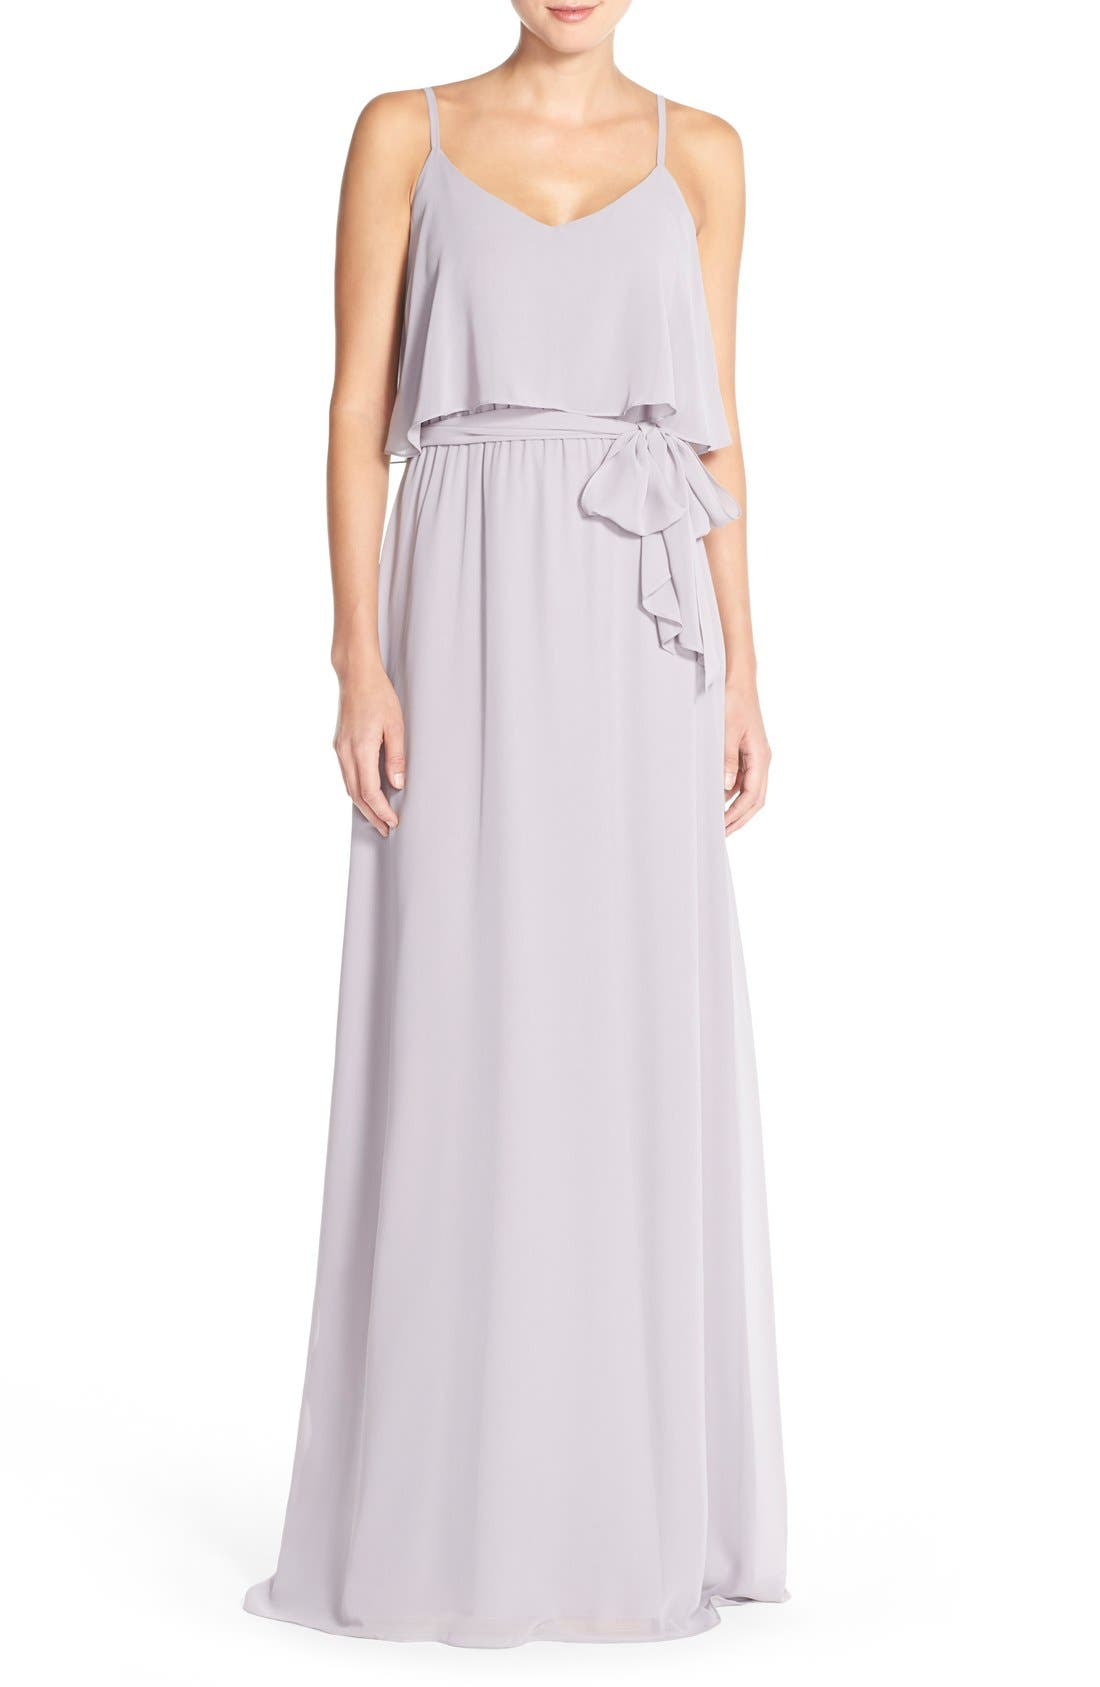 Ceremony by Joanna August 'Dani' Popover Bodice Chiffon Maxi Dress